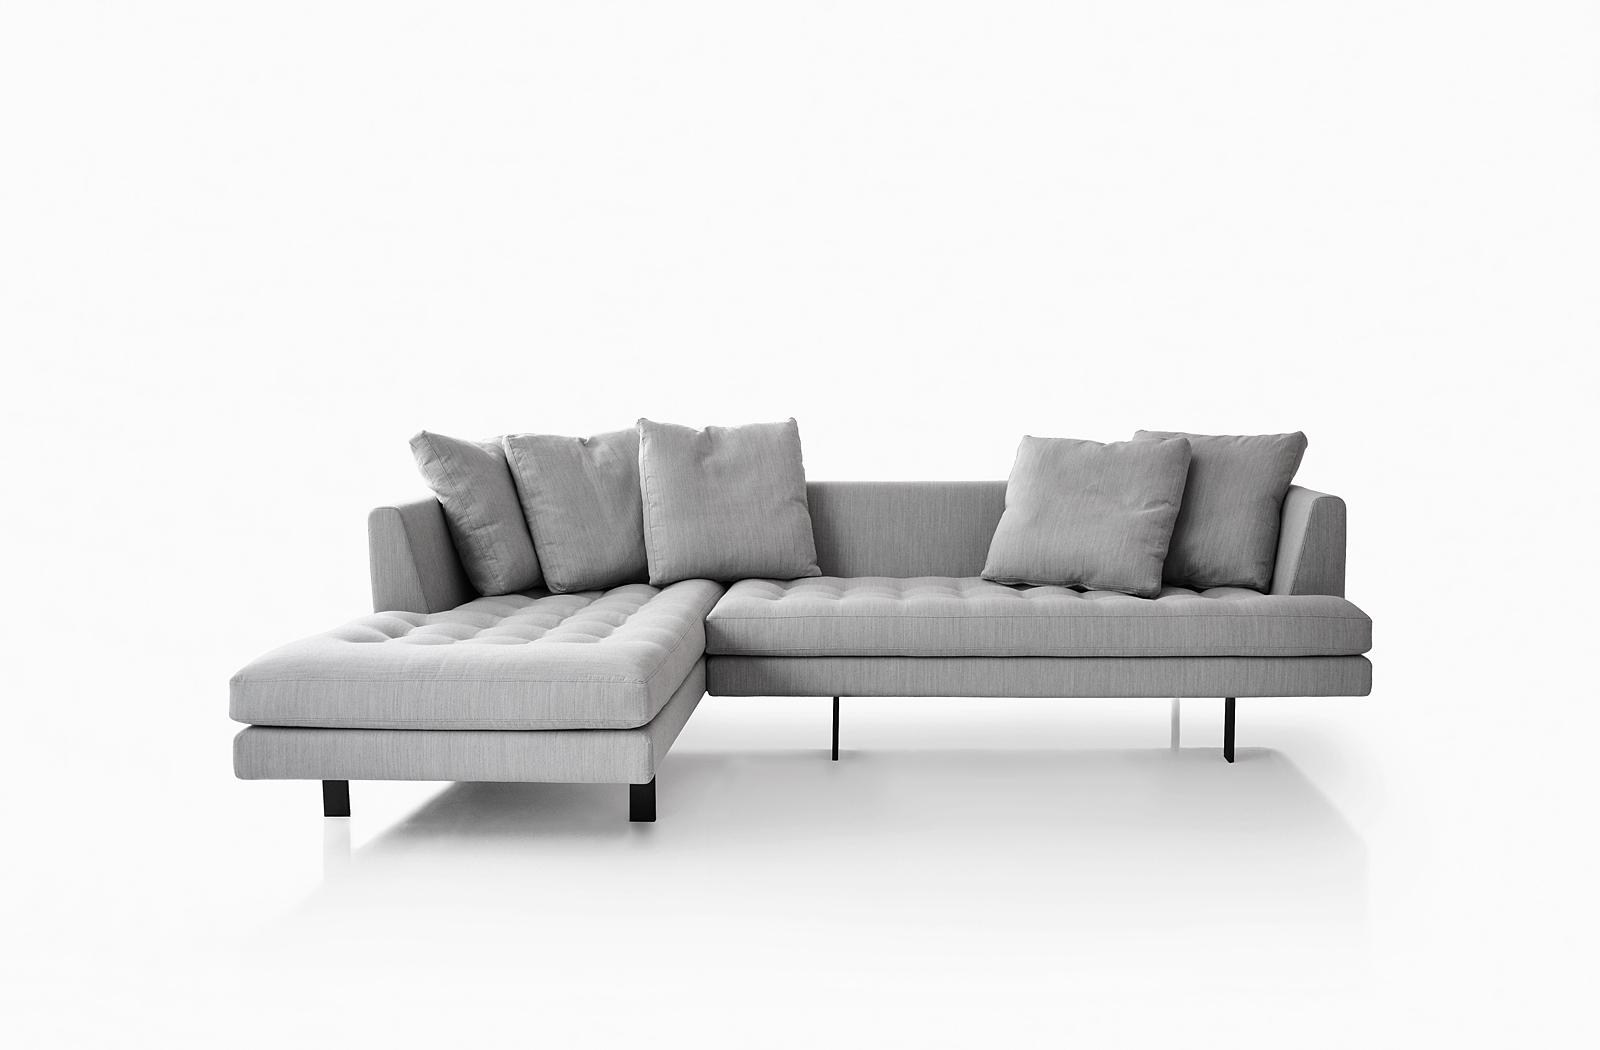 sectional mid sectionals product modern furniture and sofa or article left sven century pacific scandinavian blue